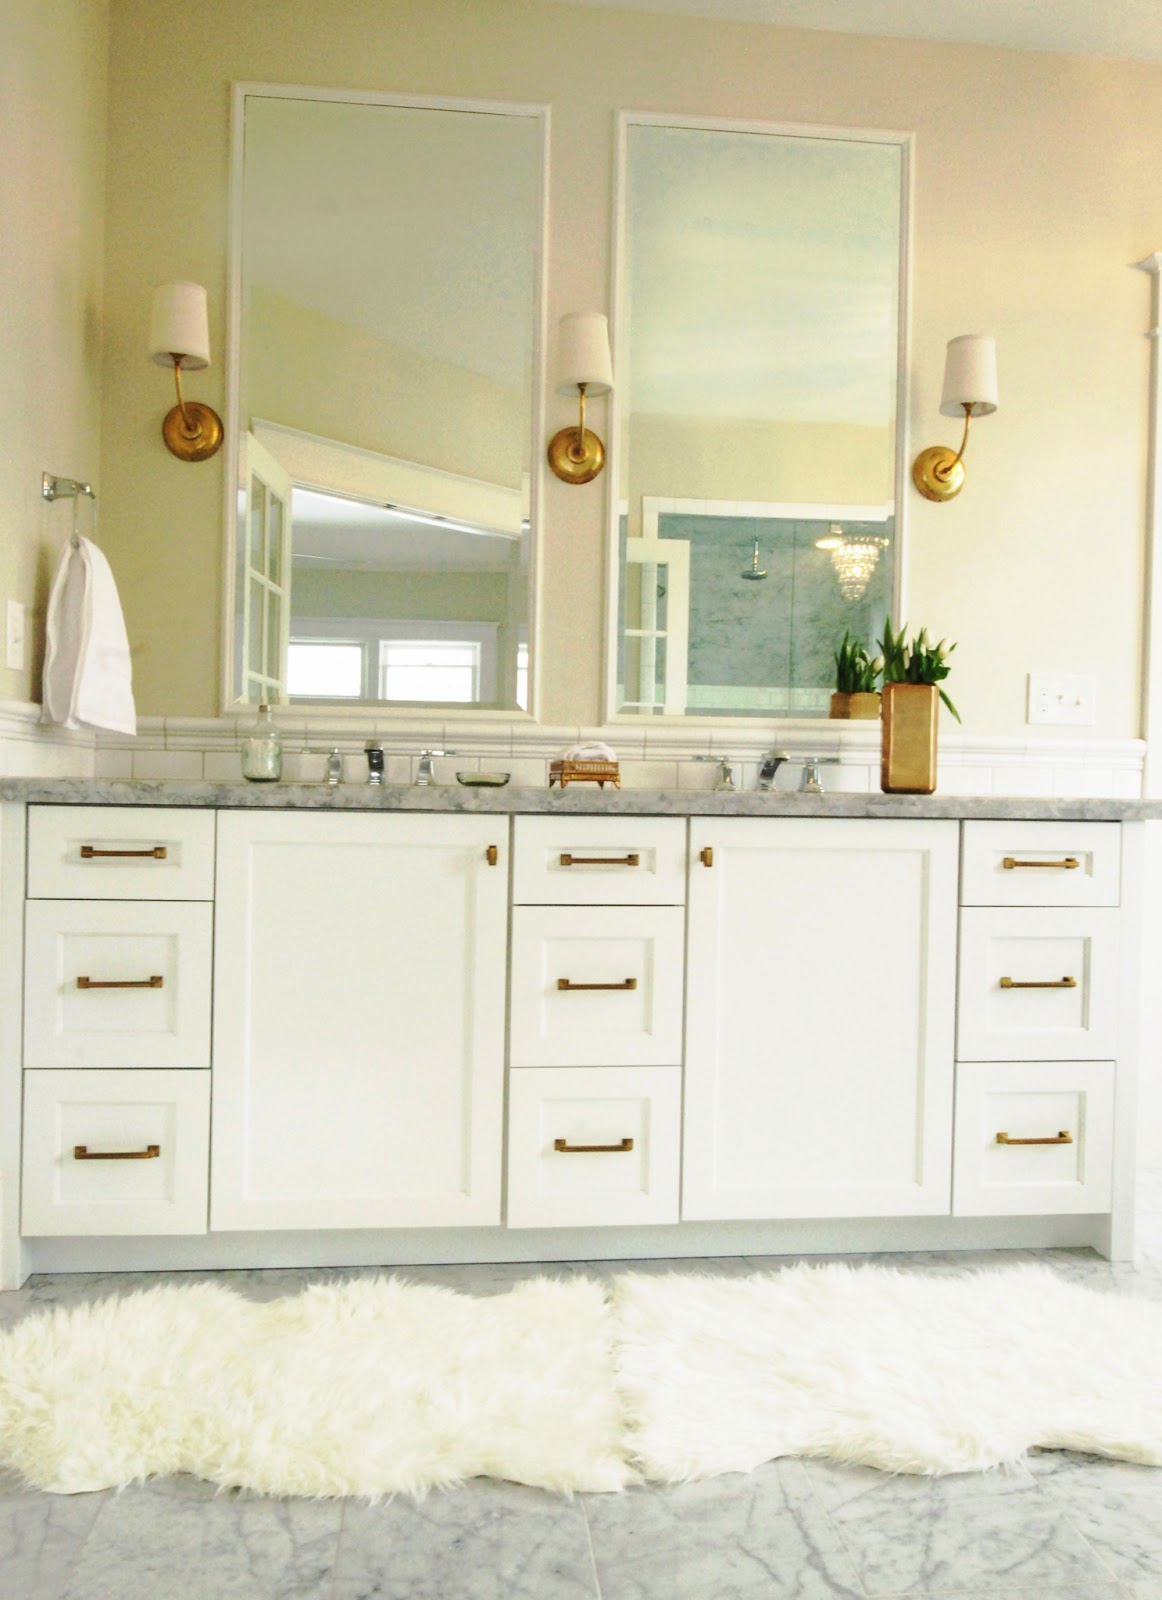 White gold how to mix metals the bathroom for Bathroom finishes